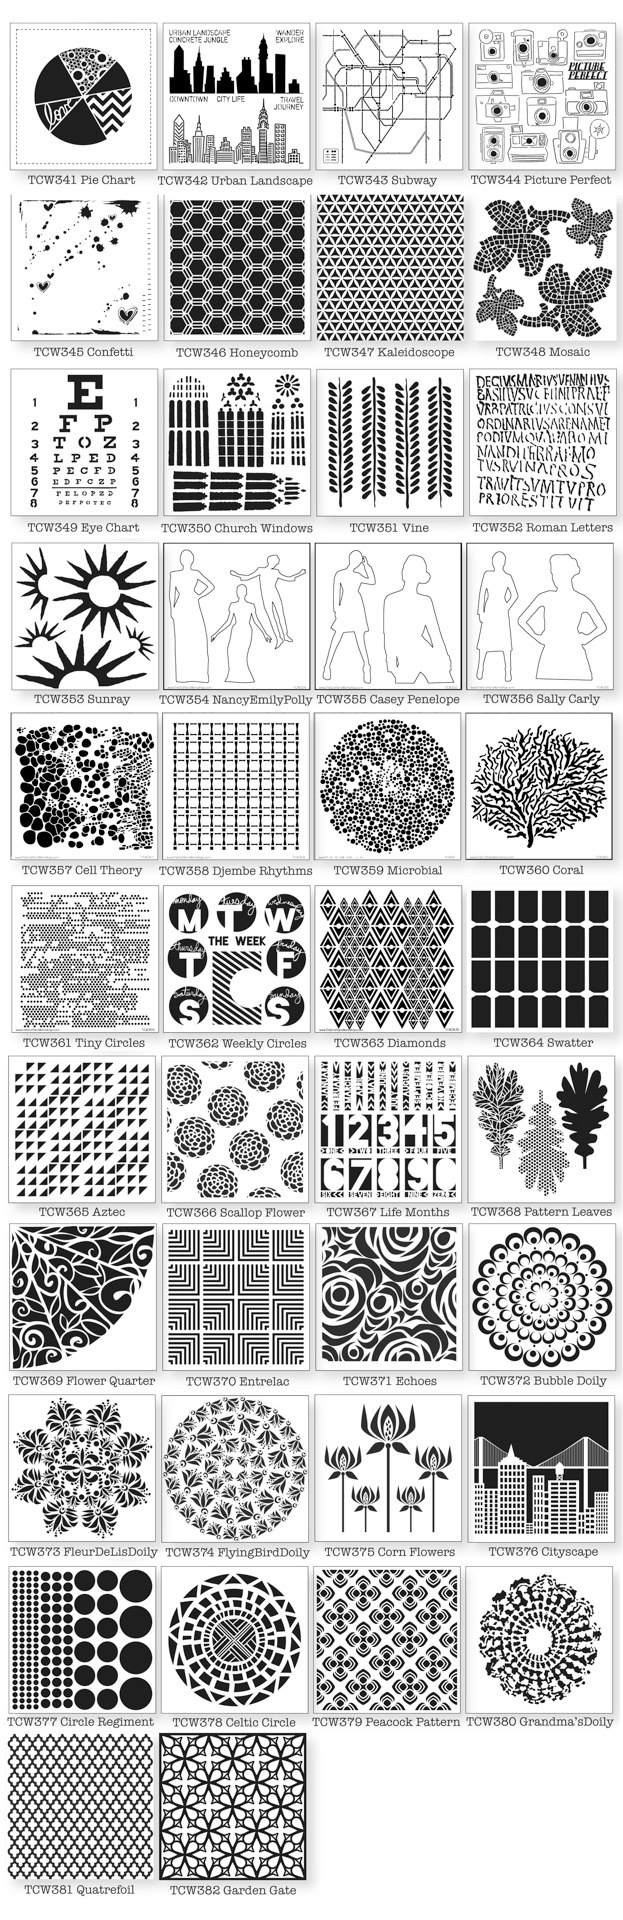 366 best Stencils images on Pinterest | Stencil, Stenciling and ...